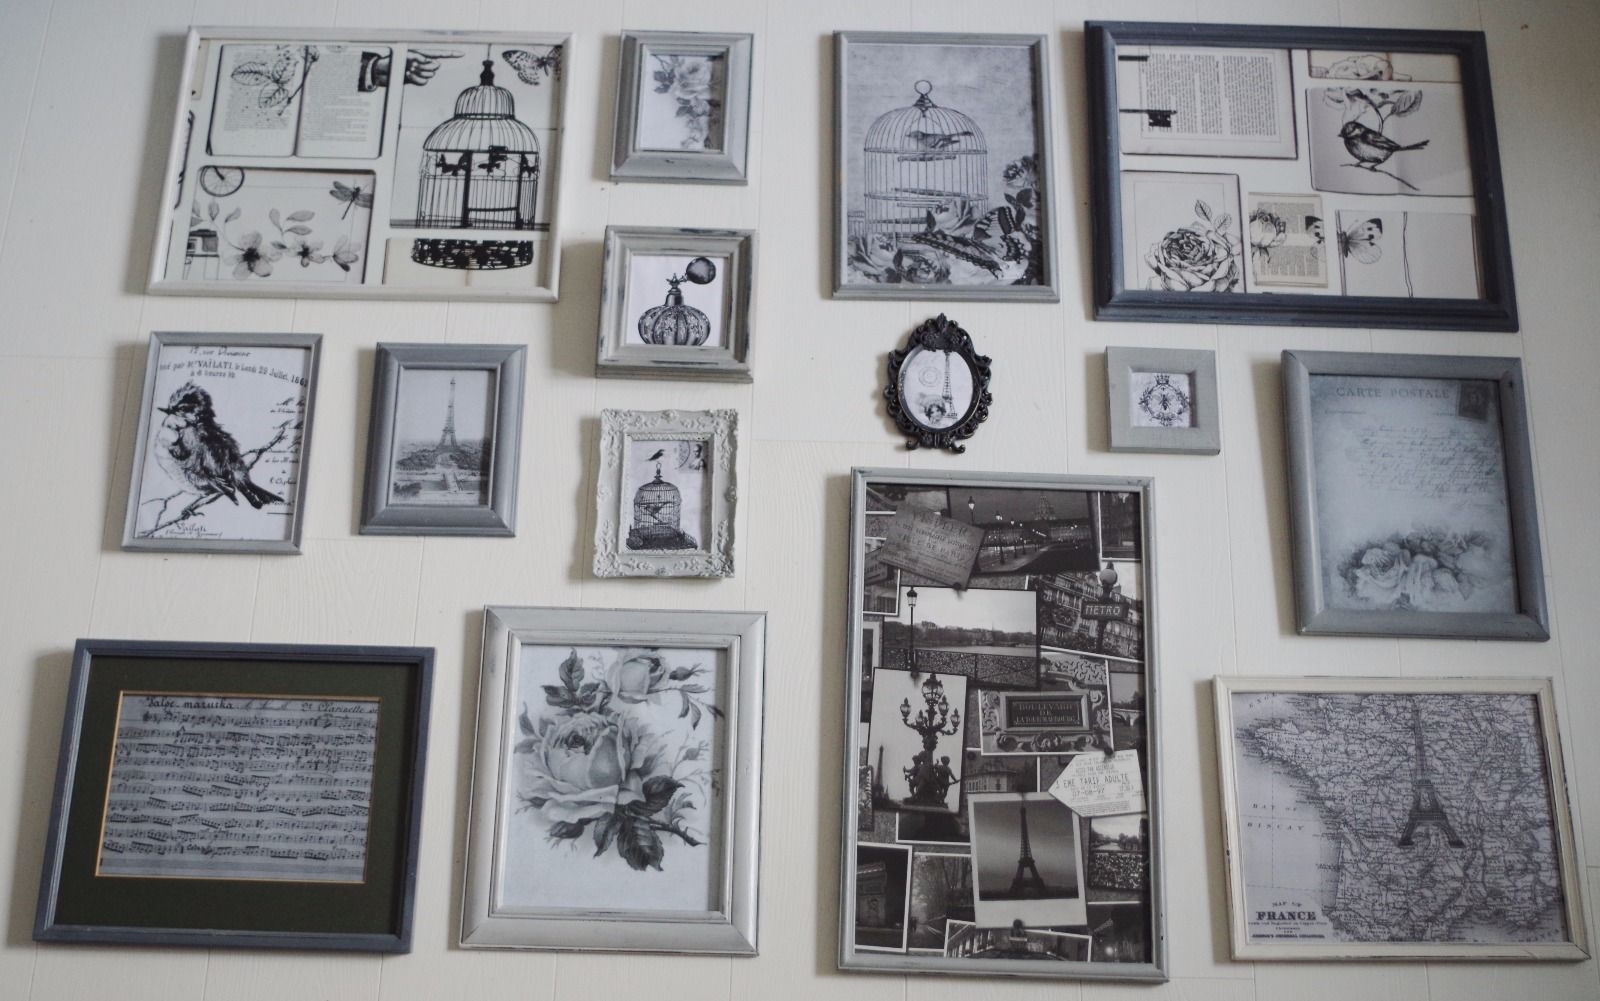 Shabby chic picture frames 15 shades of grey feature wall black shabby chic picture frames 15 shades of grey feature wall black white images jeuxipadfo Images